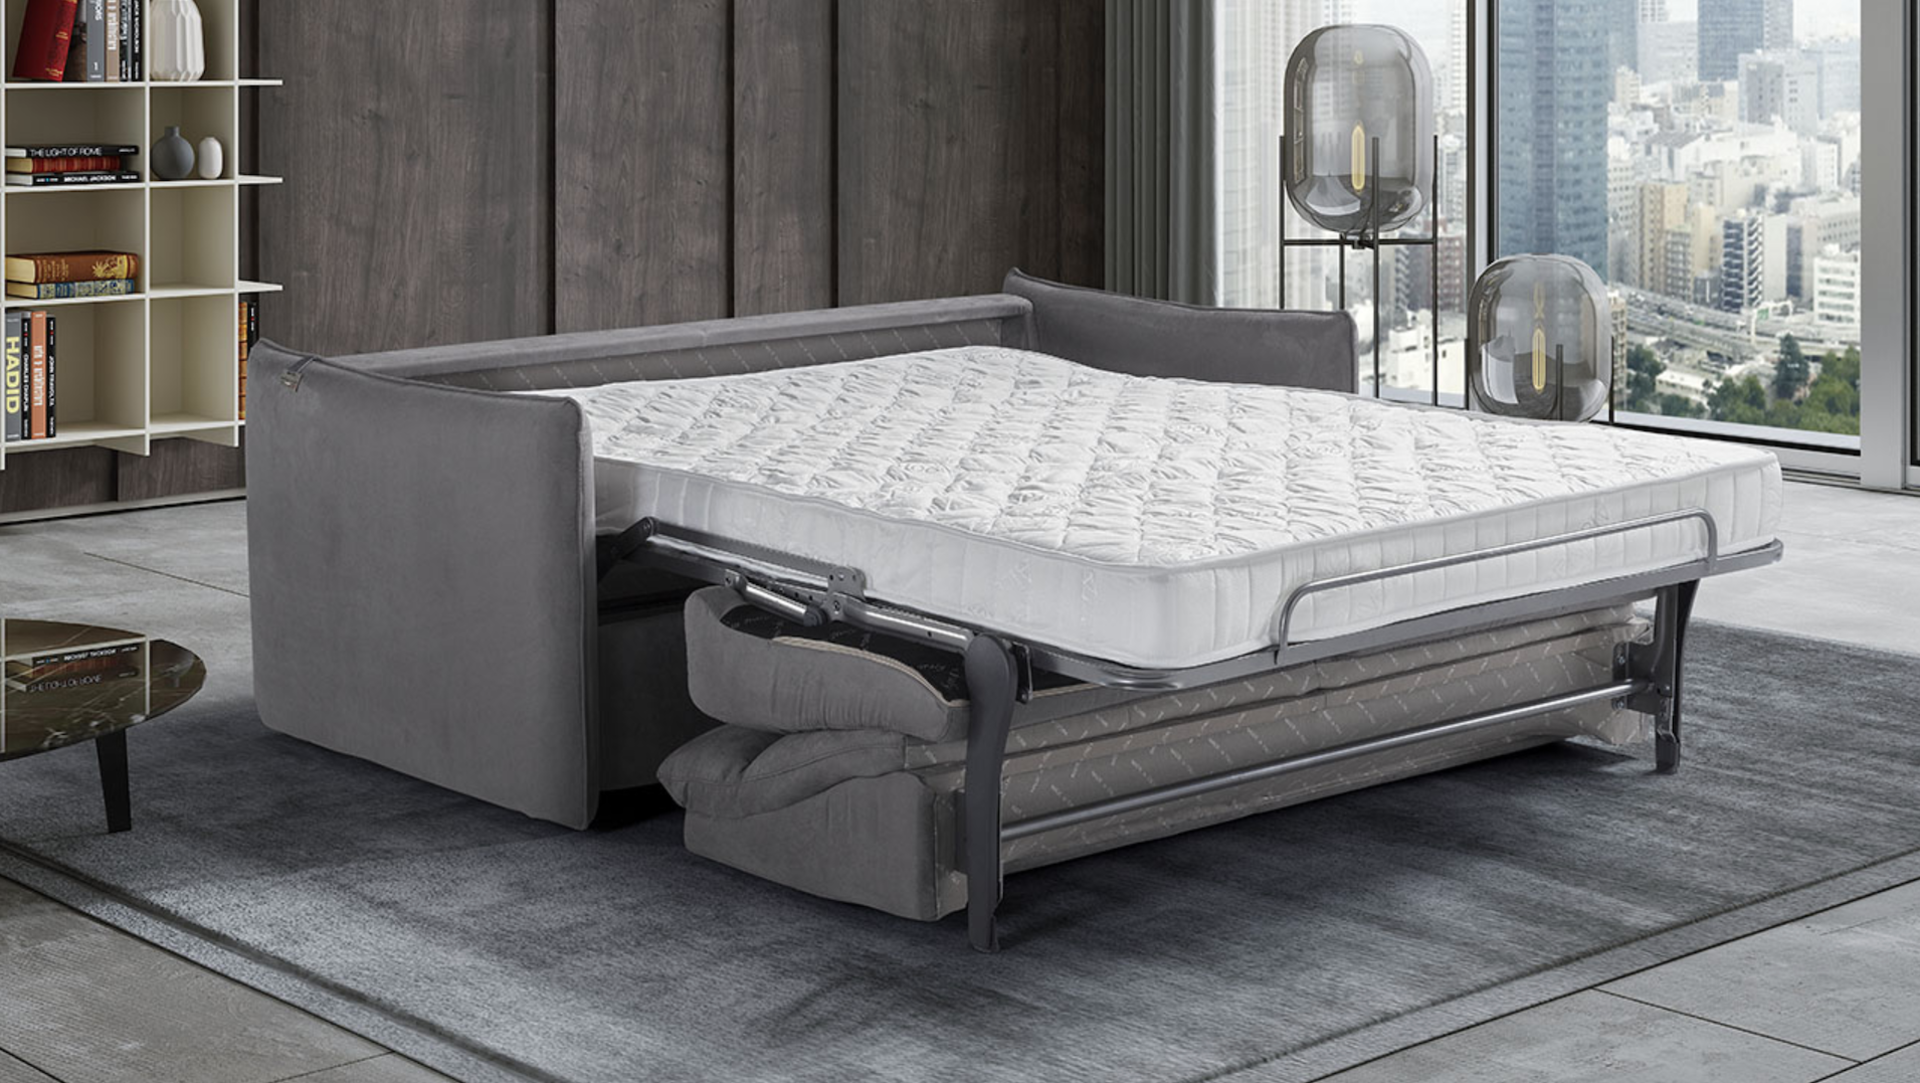 'AIMEE' Italian Crafted 3 Seat Sofa Bed in PLAZA GREY. RRP £1979 - Image 4 of 5